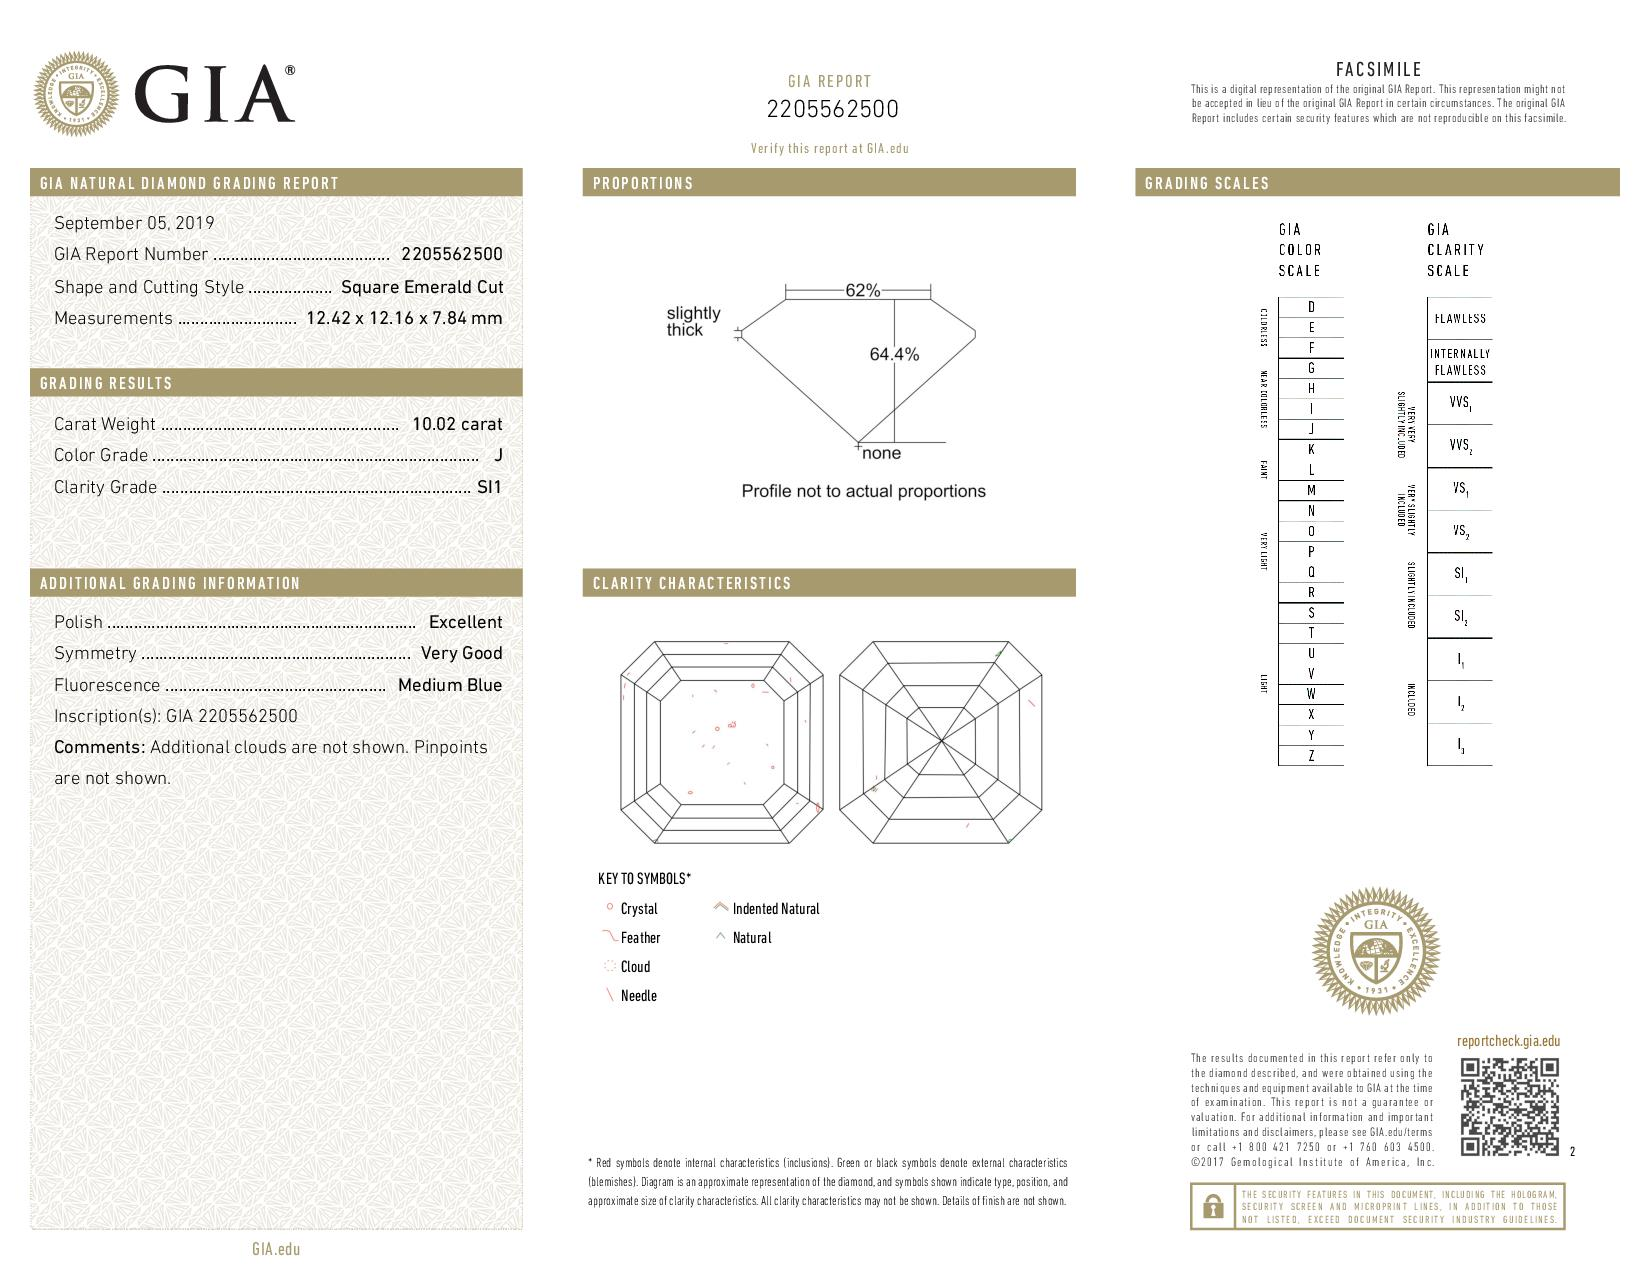 This is a 10.02 carat asscher shape, J color, SI1 clarity natural diamond accompanied by a GIA grading report.